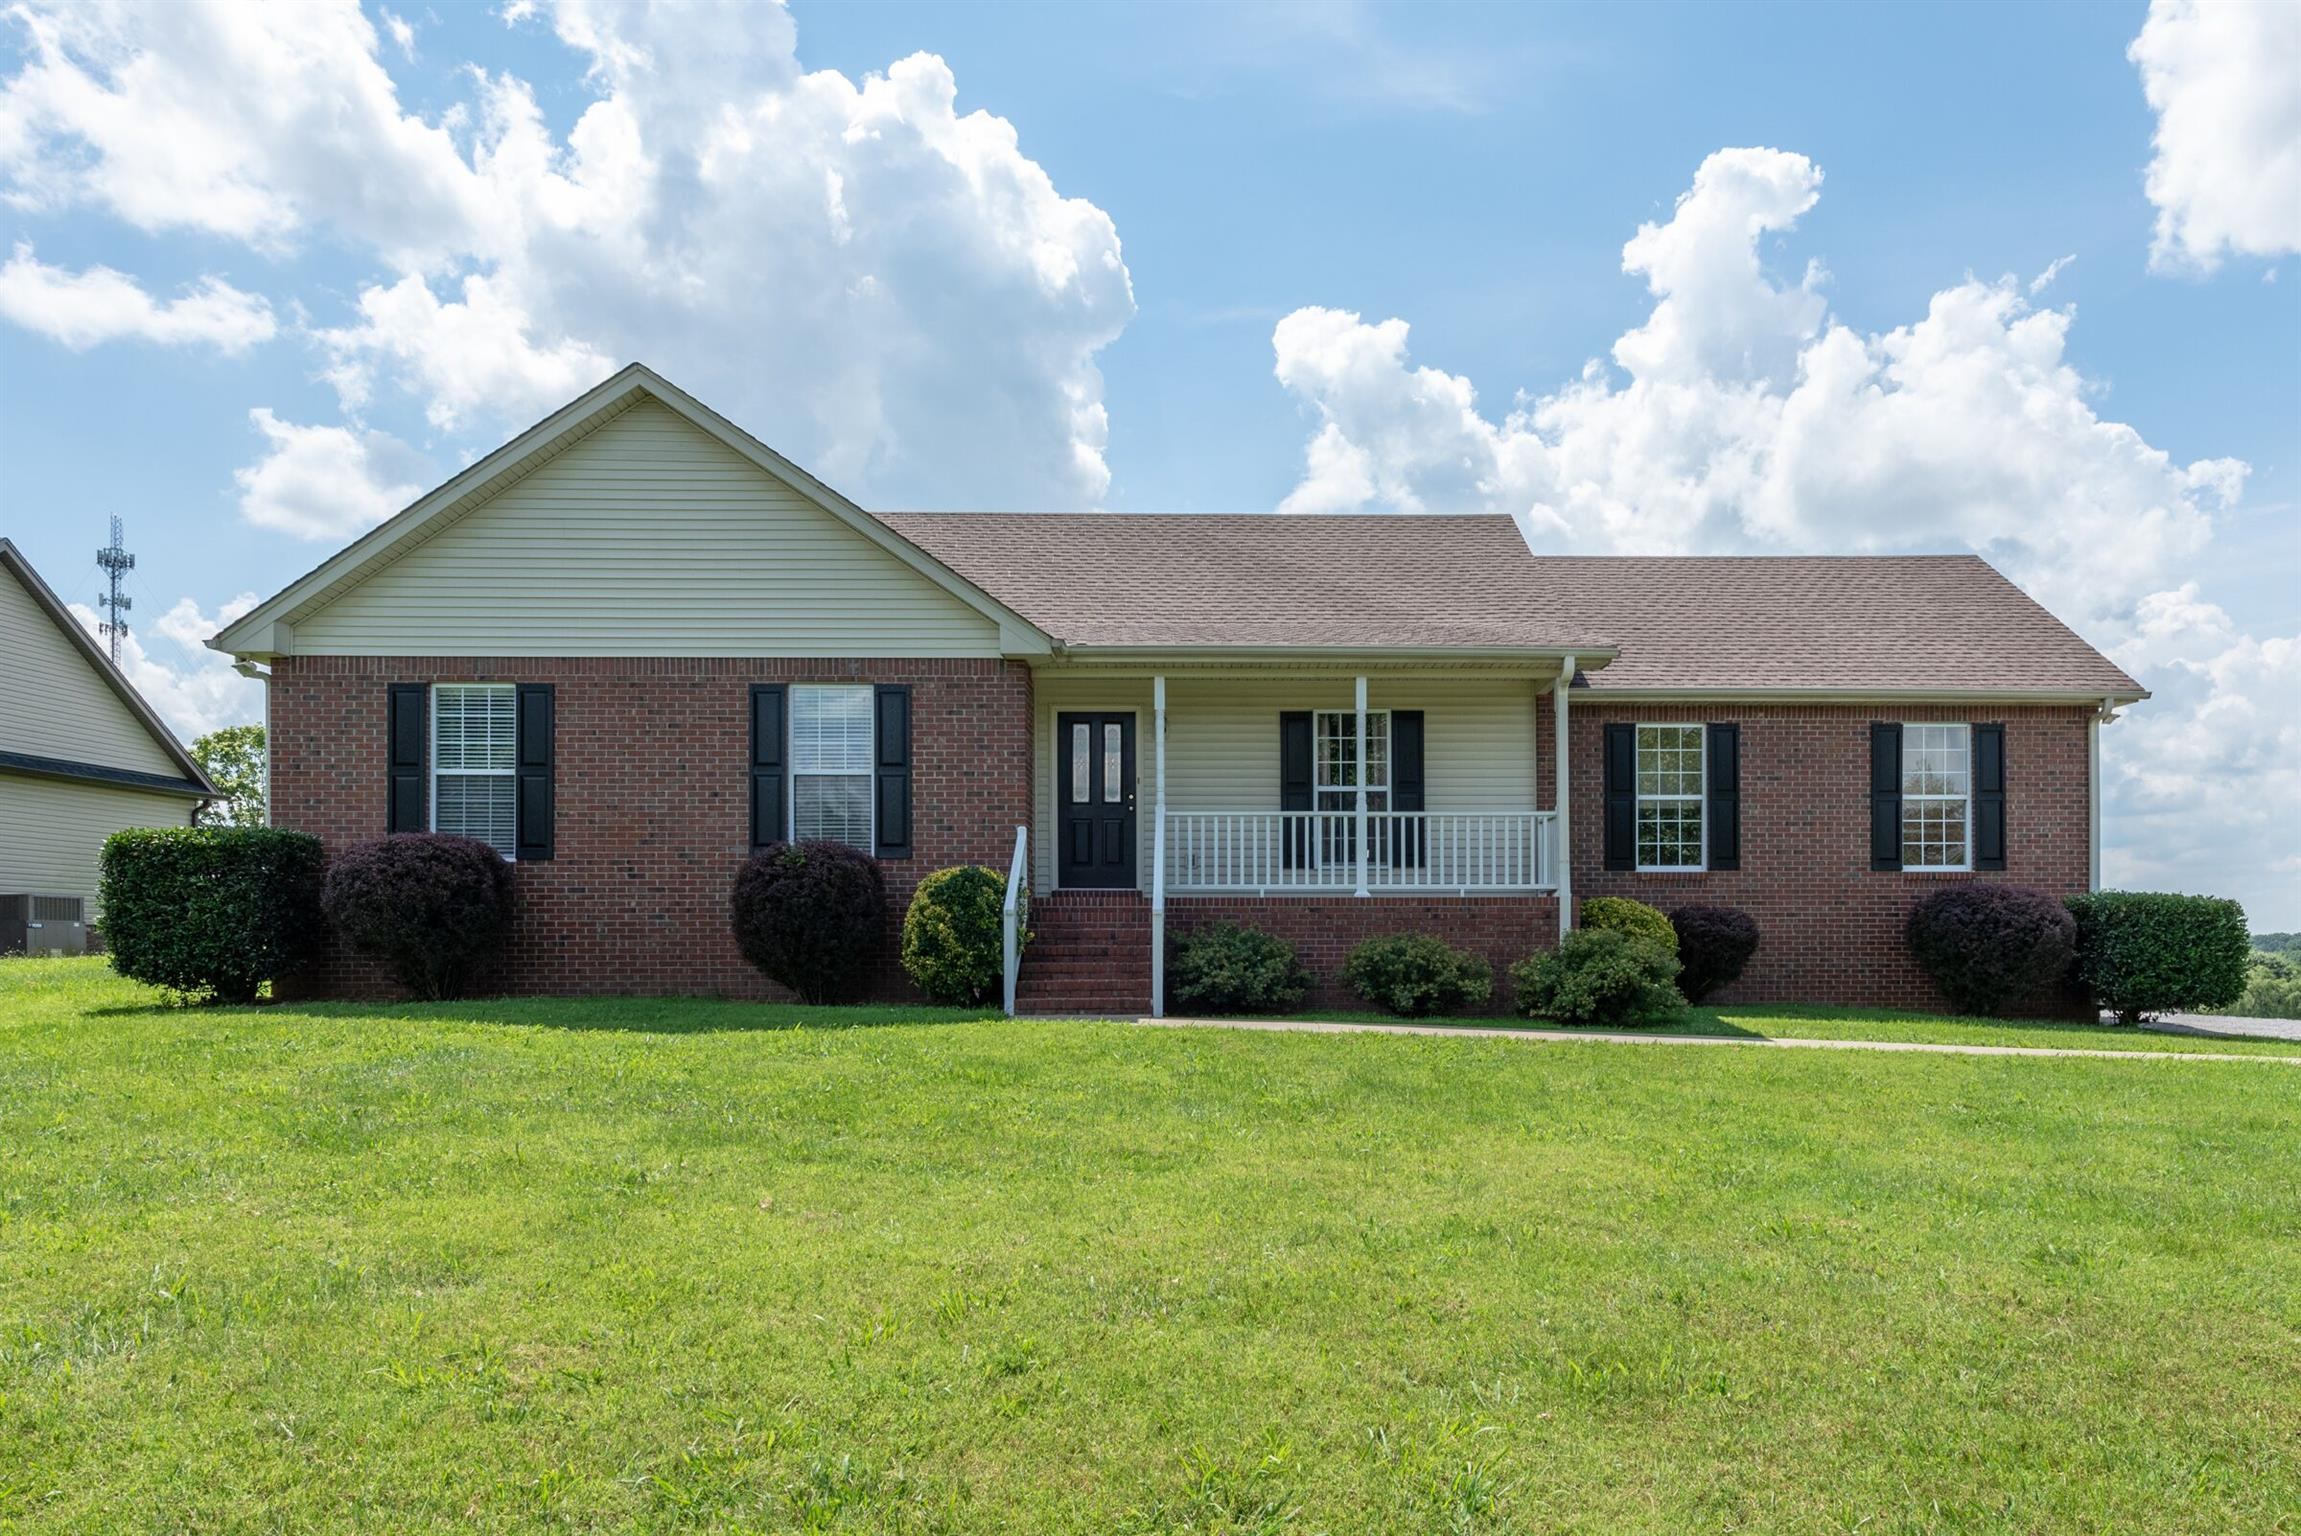 Gorgeous Home With On One Acre Lot With Desirable Floor Plan And Beautiful Touches!  3726 Calista Rd., White House, TN, 37188